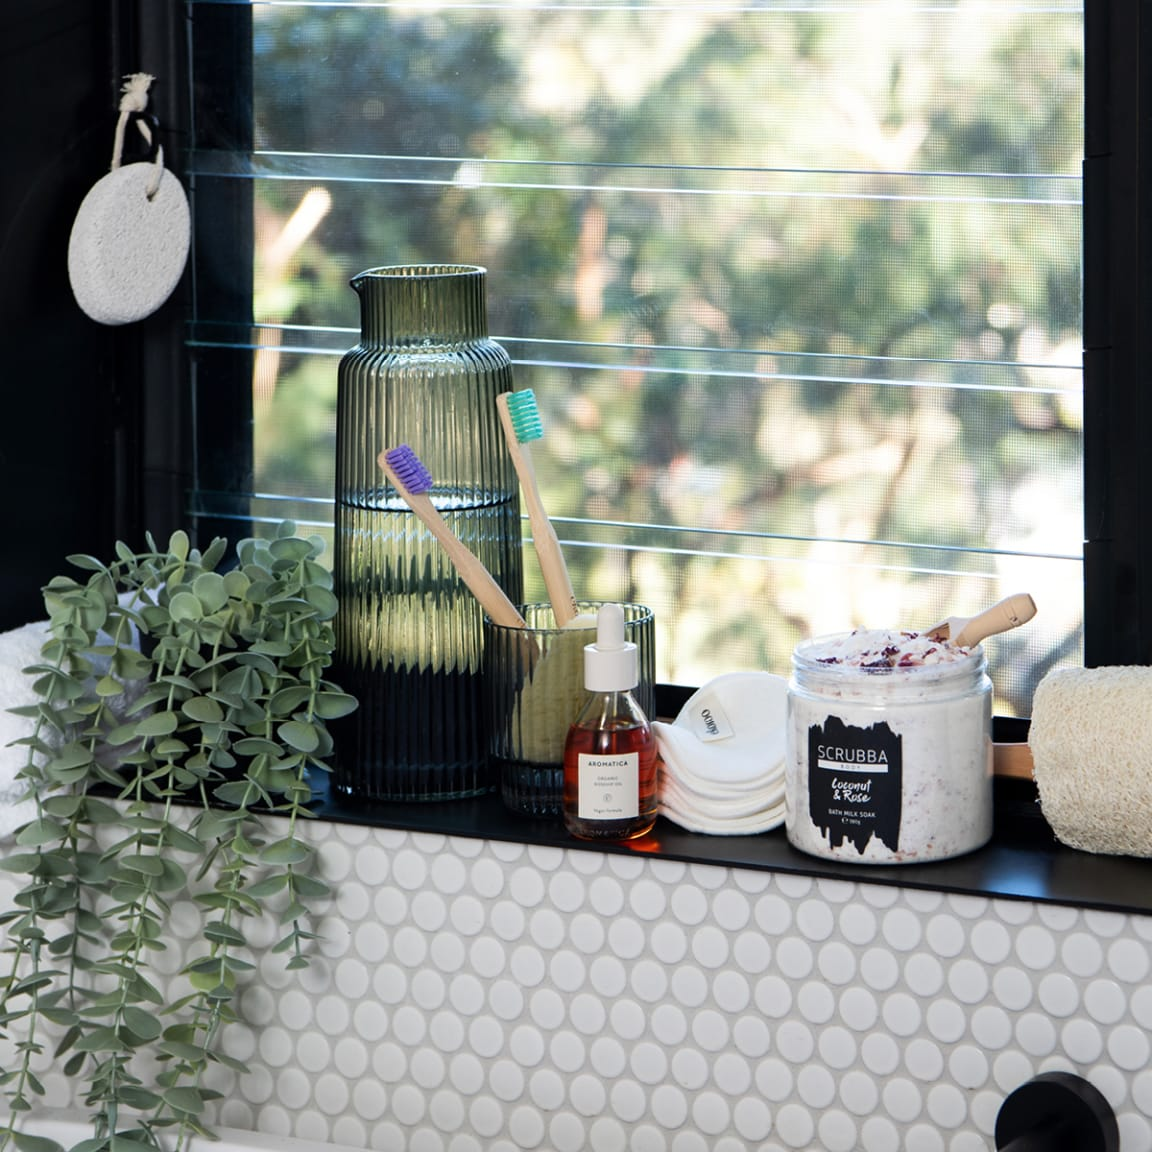 7 accessories that will add instant style to your bathroom